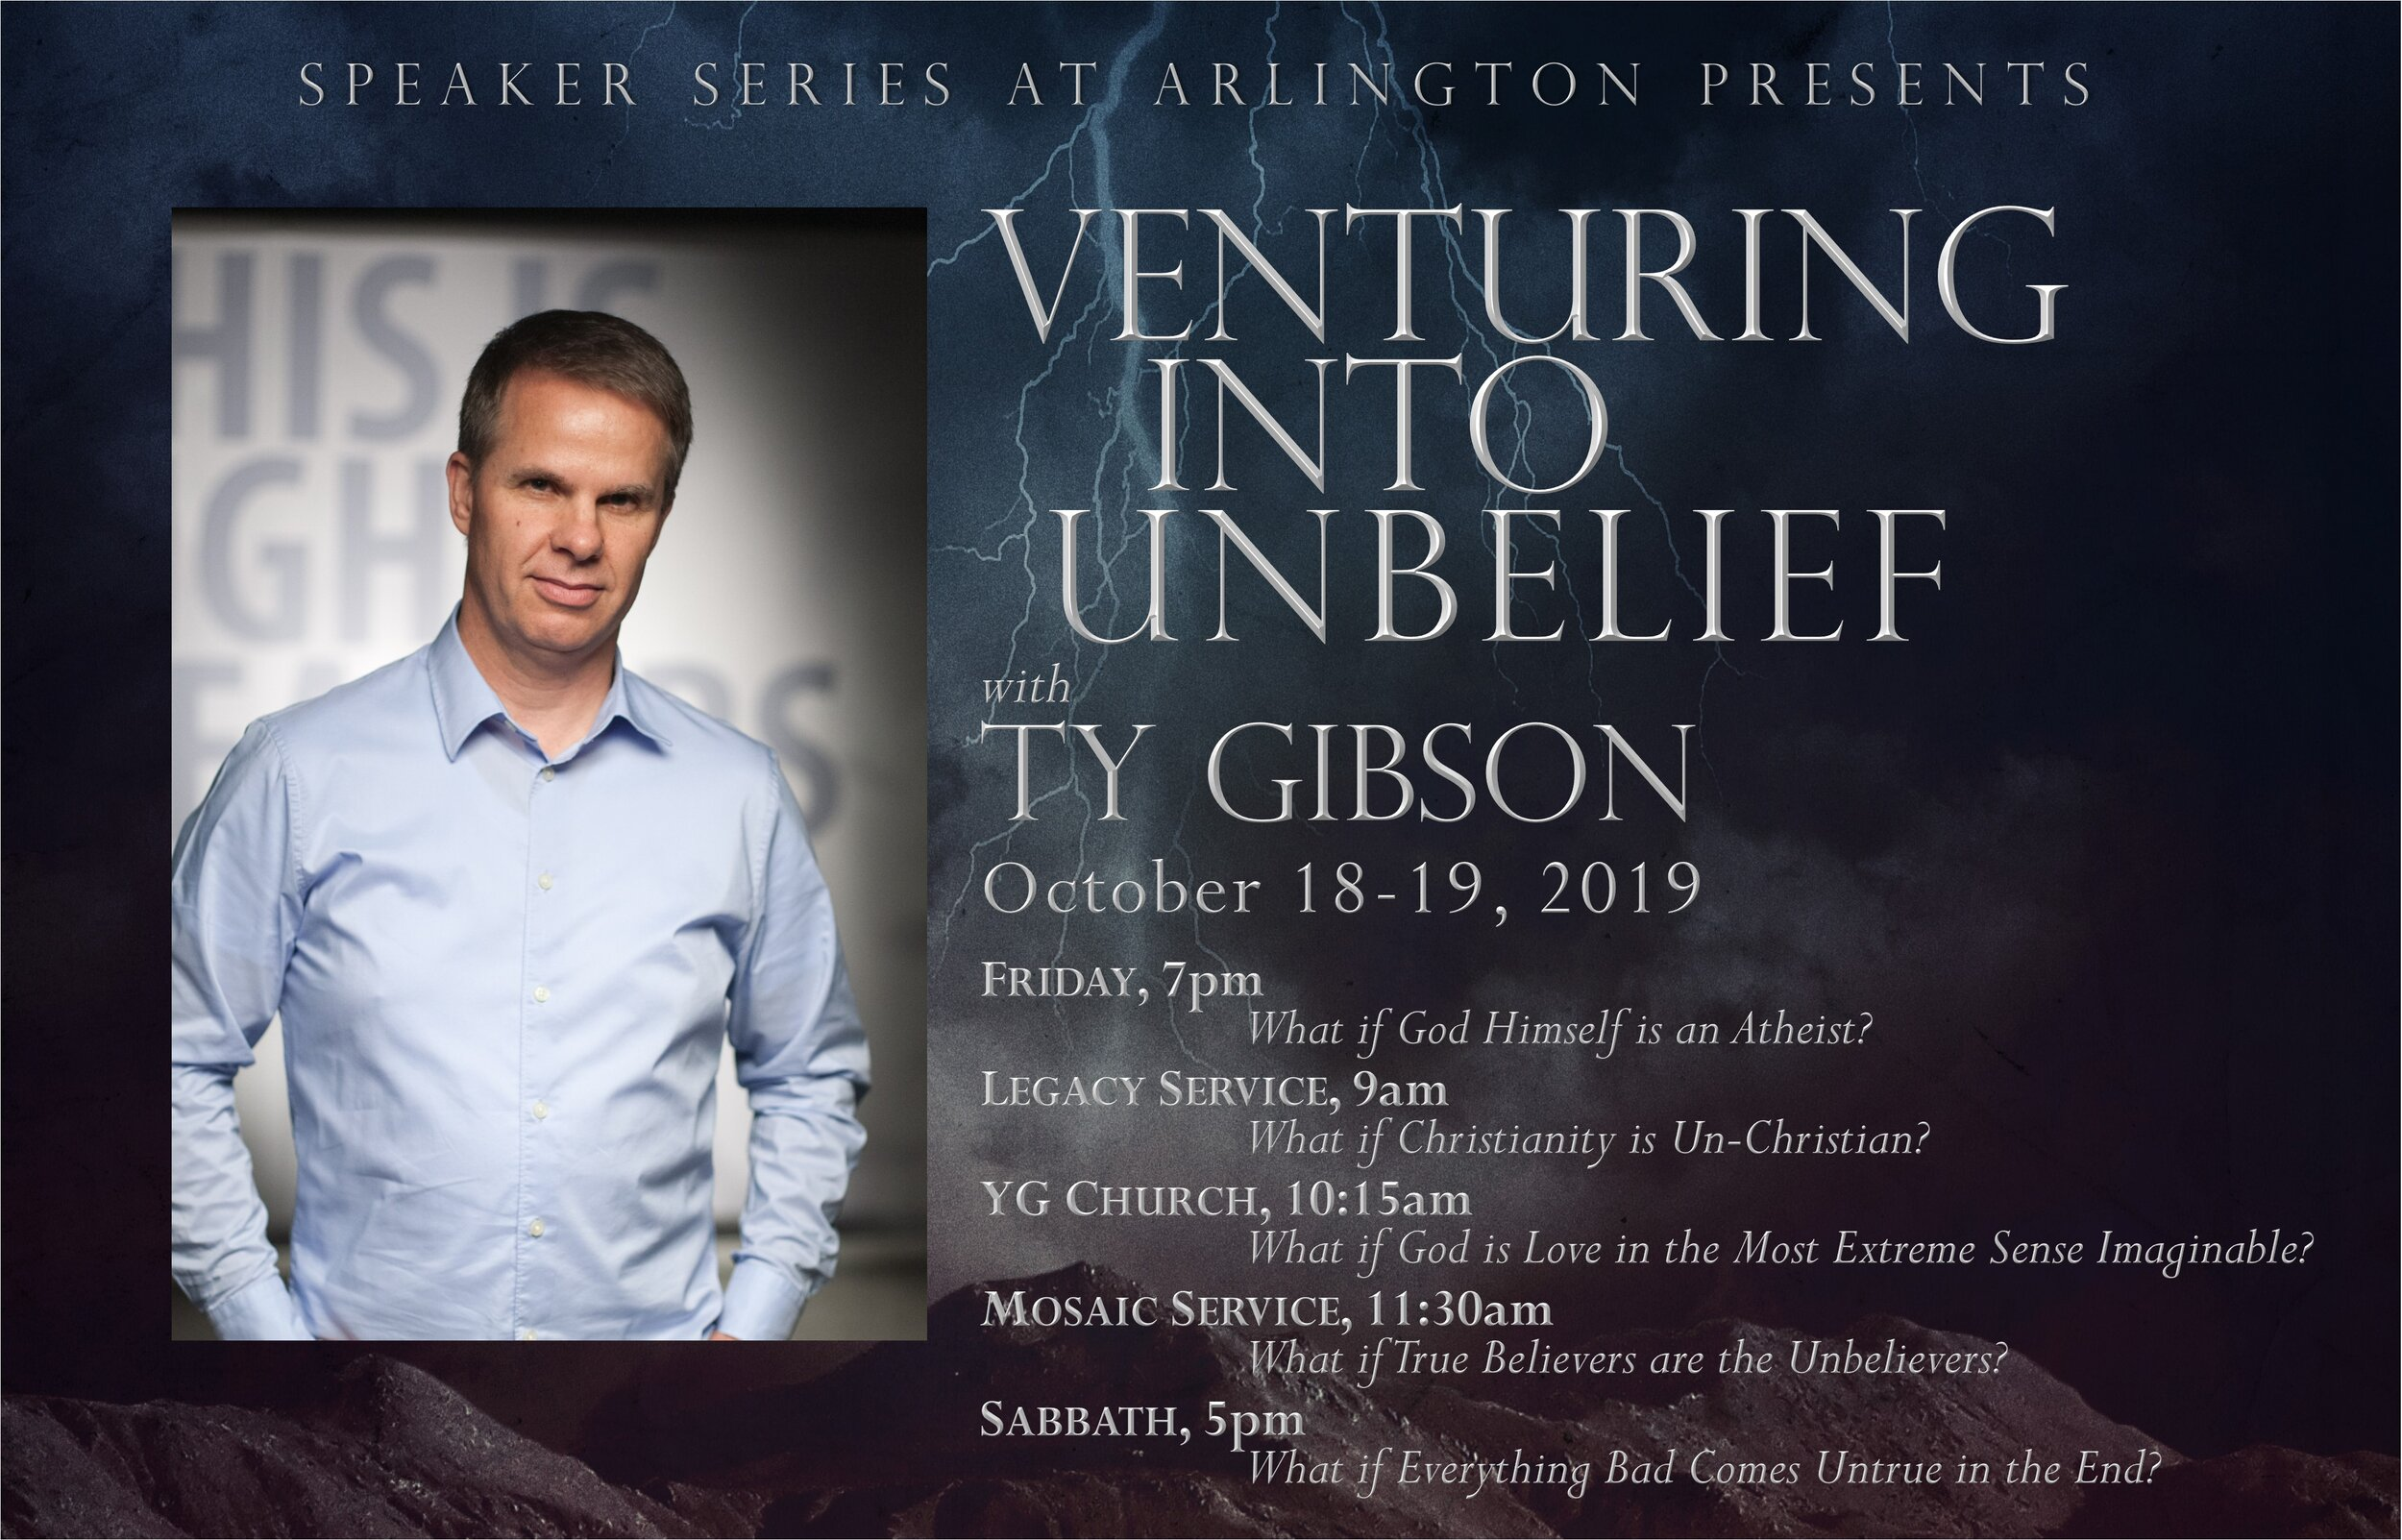 """VENTURING INTO UNBELIEF 2019 Speaker Series of Arlington with Pastor Ty Gibson October 18-19  Arlington Seventh-day Adventist Church 4409 Pleasantview Drive, Arlington, TX 76017  Free event:  https://arlingtonadventist.squarespace.com/events/2019/10/18/speaker-series-of-arlington-featuring-ty-gibson  Facebook:  https://www.facebook.com/events/448998812381872/   Join us October 18-19 for the 2019 Speaker Series of Arlington as Pastor Ty Gibson presents, """"Venturing into Unbelief."""" We will kick off the weekend on Friday evening, October 18 at 7:00PM. Ty is the co-director of Light Bearers and the pastor of Storyline Seventh-day Adventist Church in Eugene, Oregon.  FRI 7:00PM –  What if God Himself is an Atheist?  SAT 9:00AM –  What if Christianity is Un-Christian?  [Legacy Service] SAT 10:15AM –  What if God is Love in the Most Extreme Sense Imaginable?  [YG Church] SAT 11:30AM –  What if True Believers are the Unbelievers?  [Mosaic Service] SAT 5:00PM –  What if Everything Bad Come Untrue in the End?"""